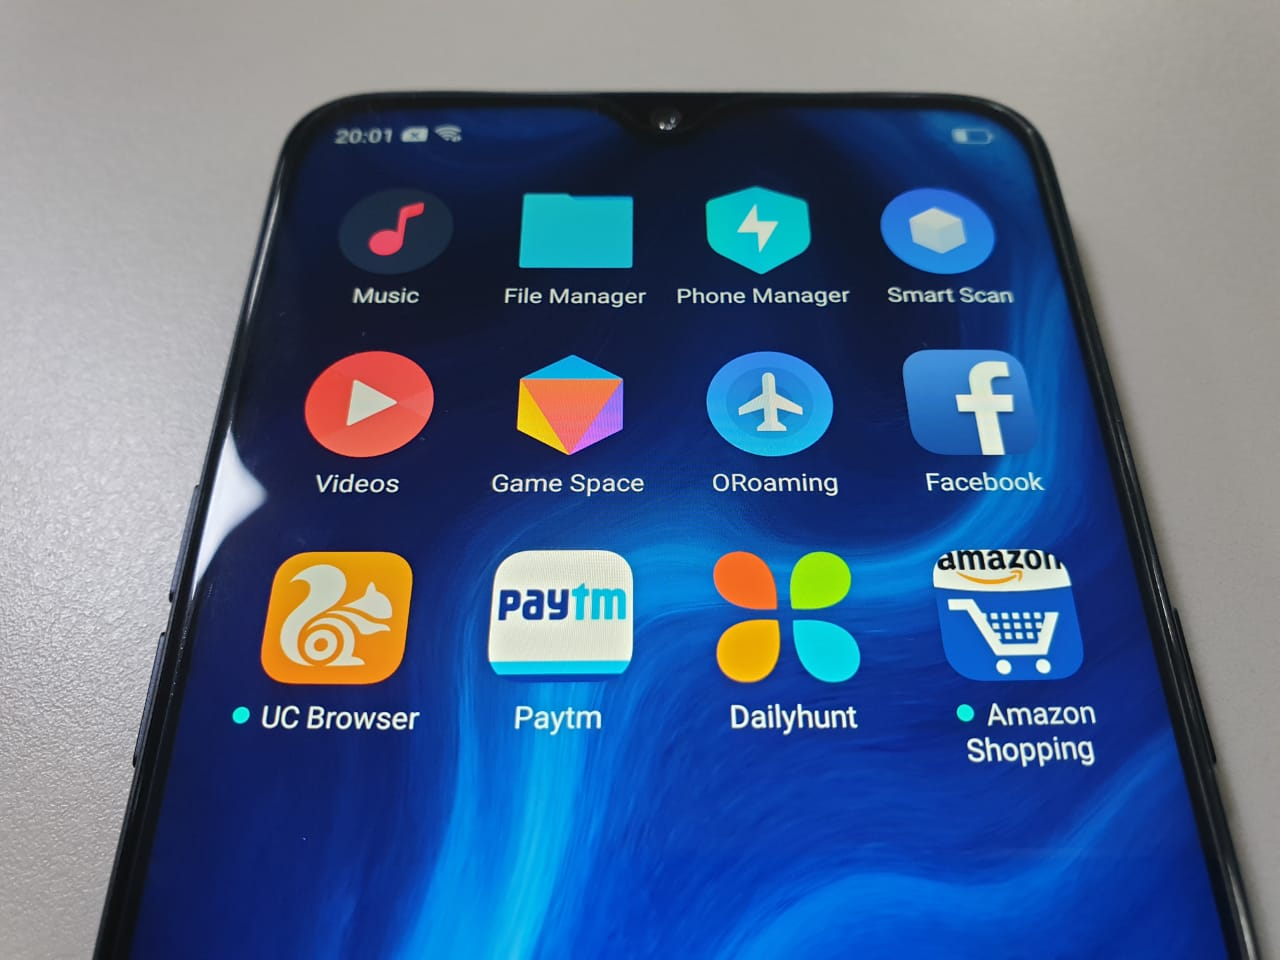 OPPO Realme U1 Hands-On Review - Waterdrop Notch, Dual Camera At A